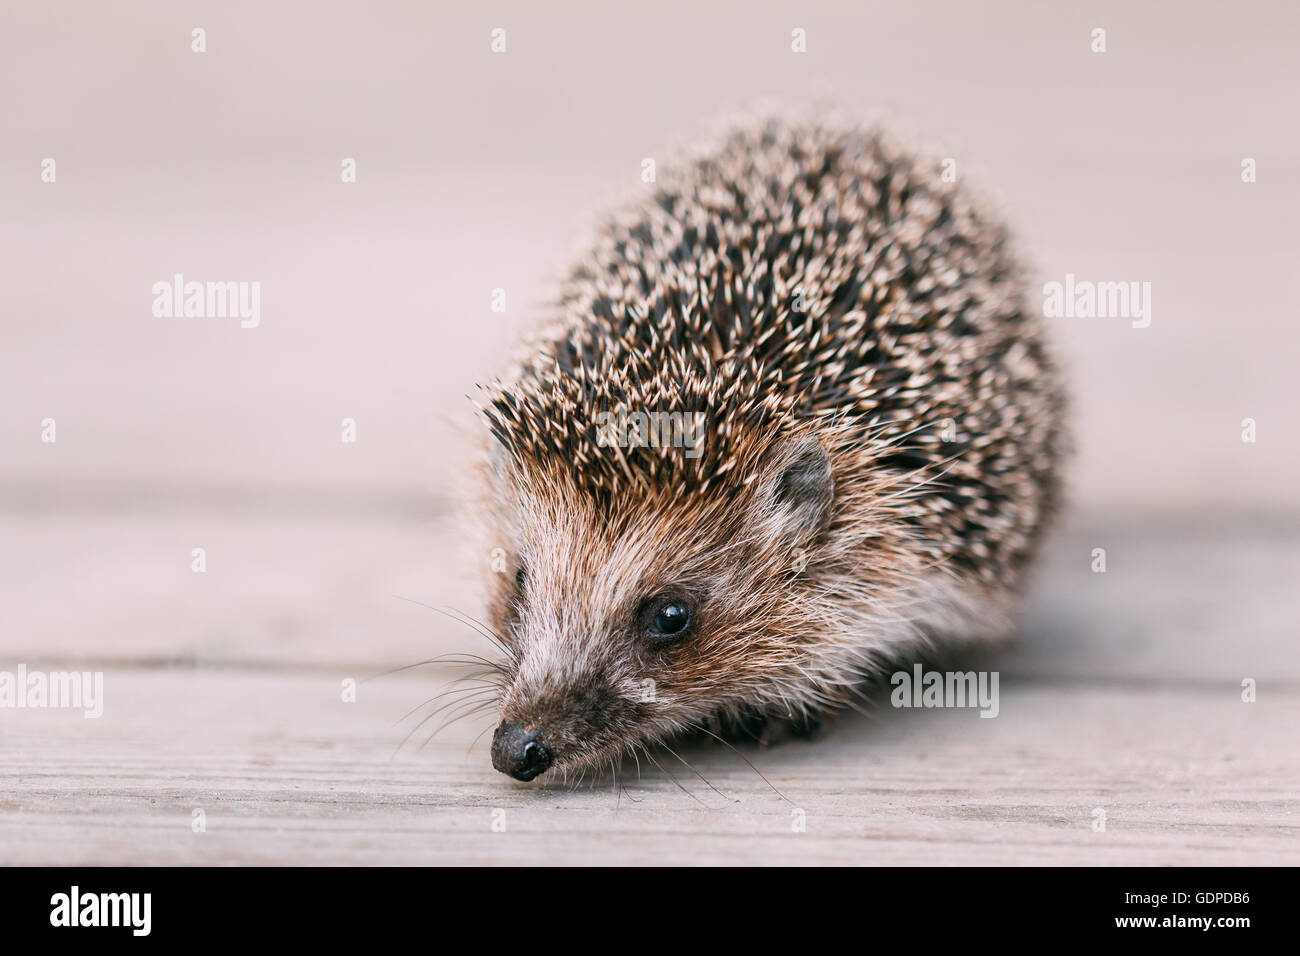 Cute Funny Lovely Hedgehog Standing On Wooden Floor - Stock Image